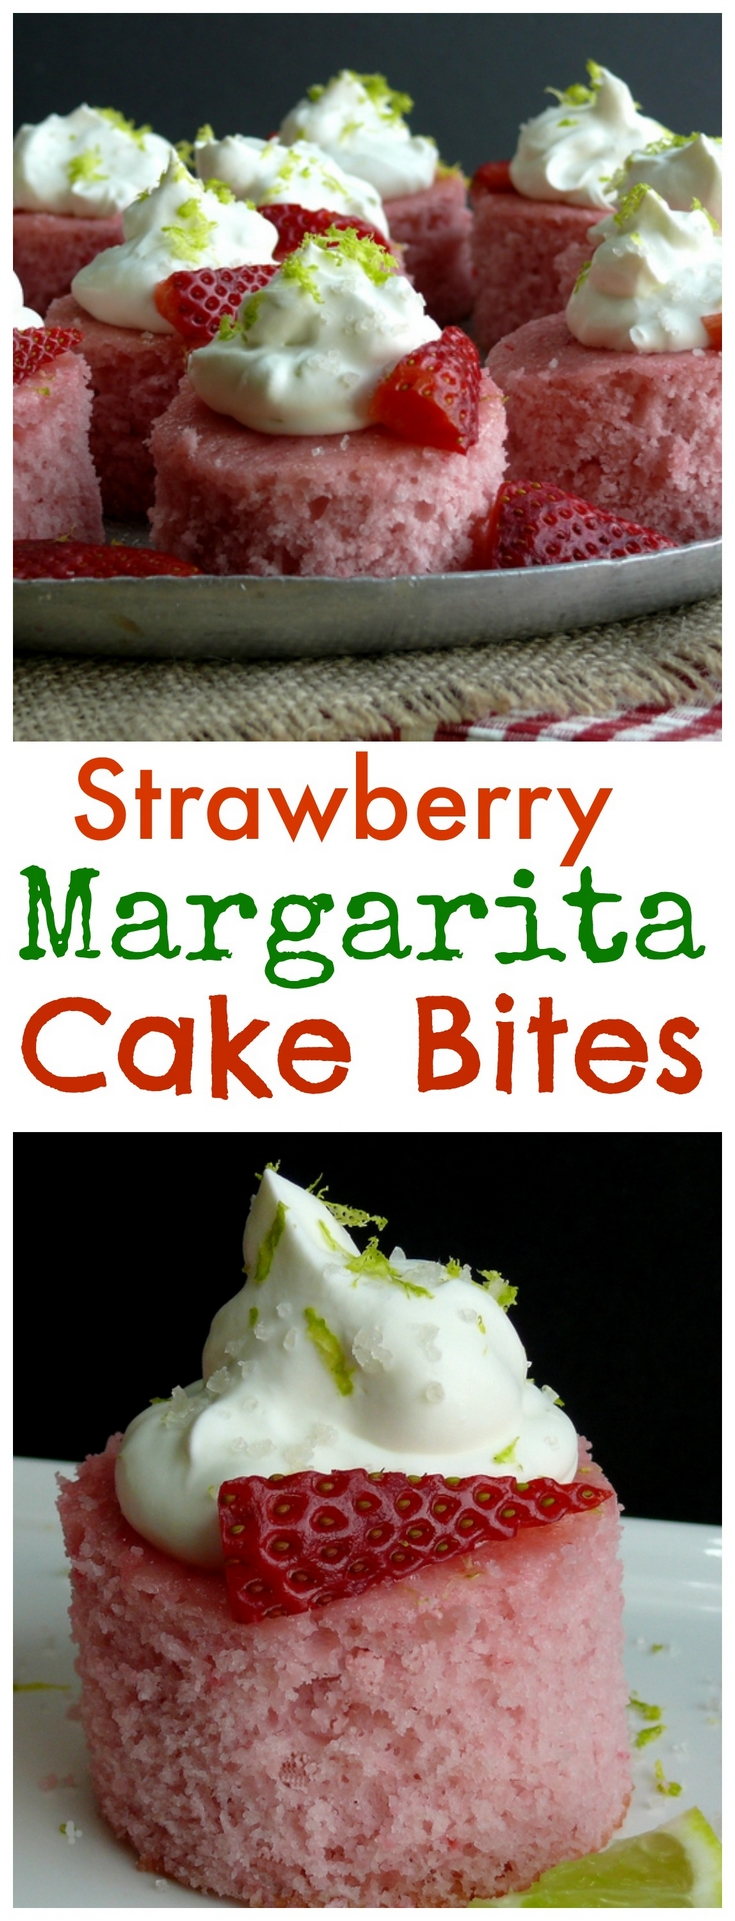 Strawberry Margarita Cake Bites Video